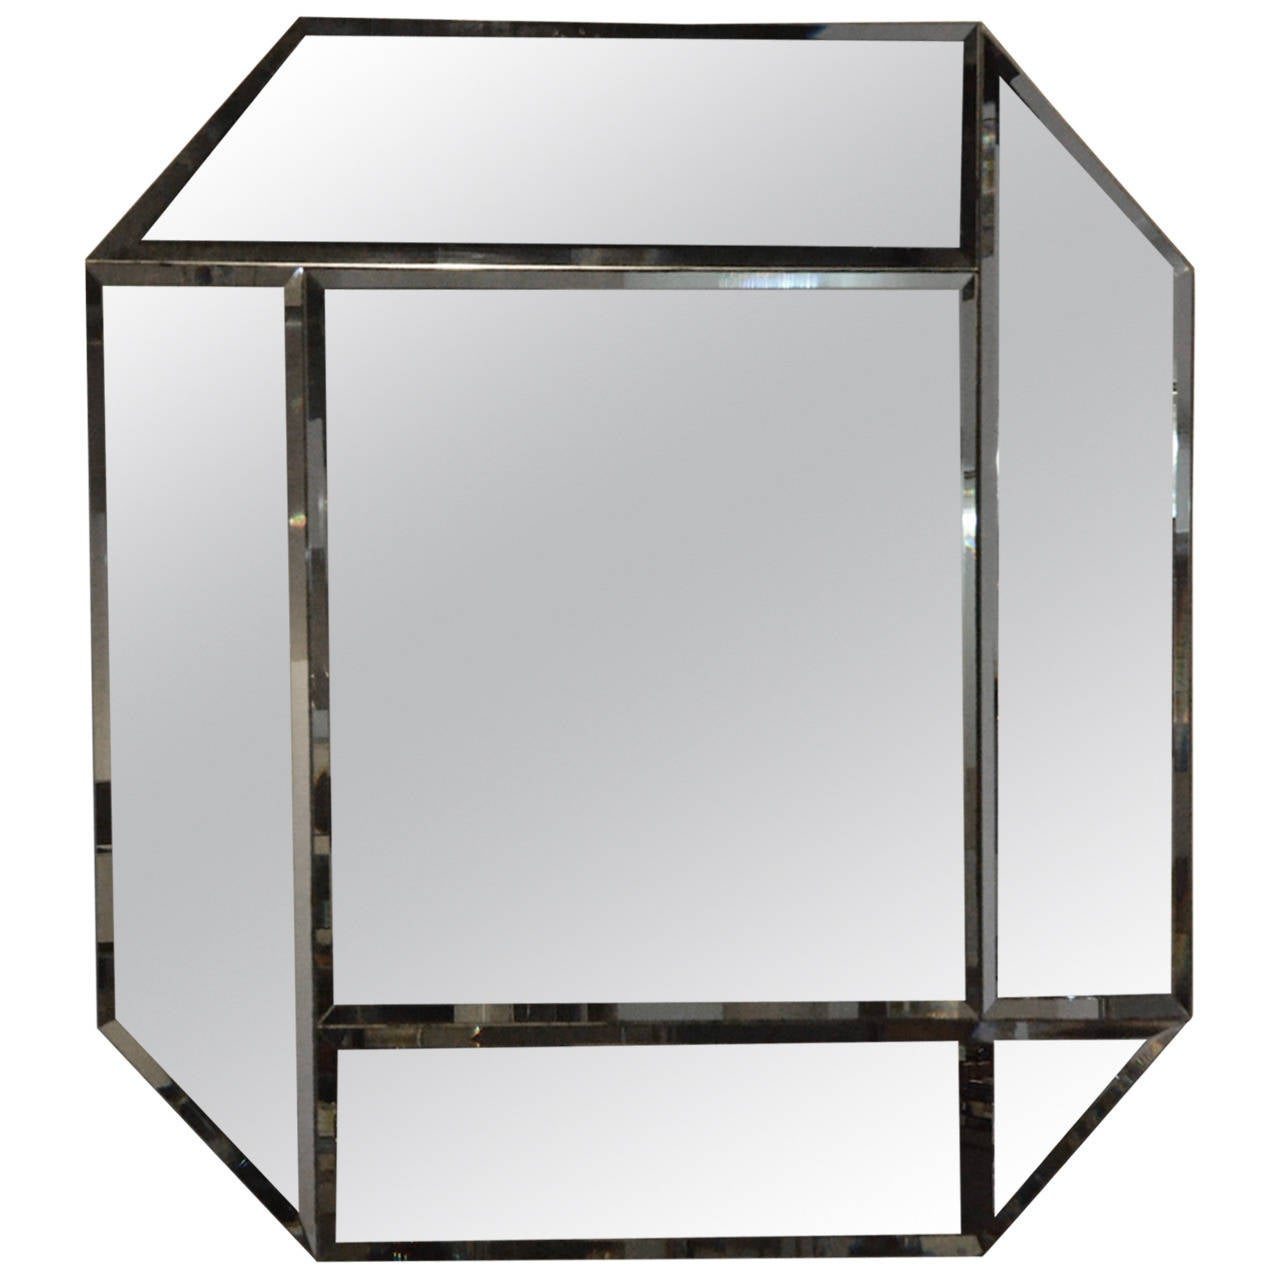 Geometric Mirror Signed By Dan Johnson At 1stdibs. Safari Decor. Extendable Glass Dining Table. Living Room Hammock. Siematic Kitchens. Bed With Shelves. Oversized Beds. Monsey Glass. Vanity Chair For Bathroom